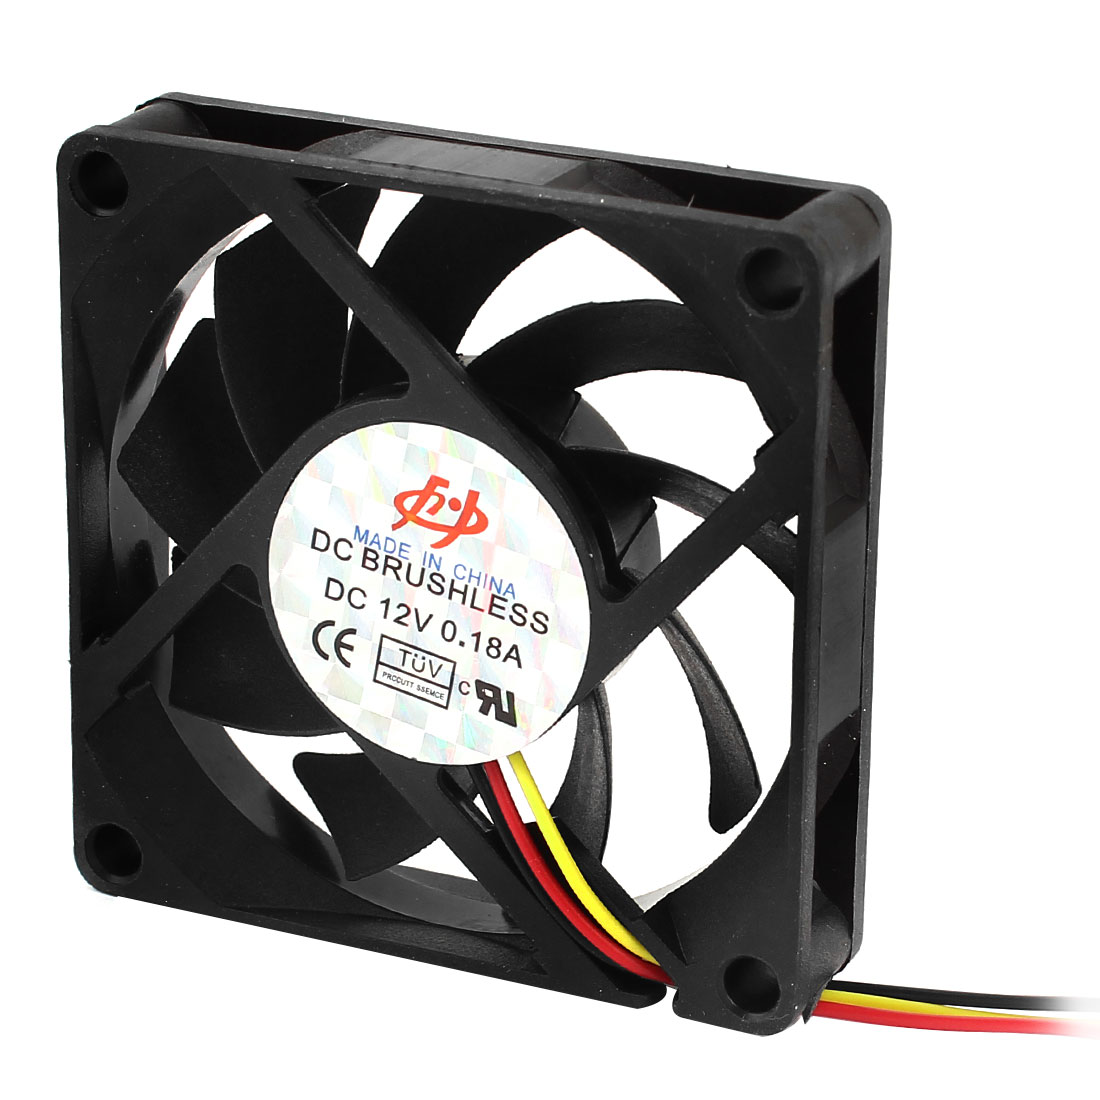 DC 12V 3 Cable 70 x 70 x 15mm Brushless Cooling Fan for Computer Case CPU Cooler